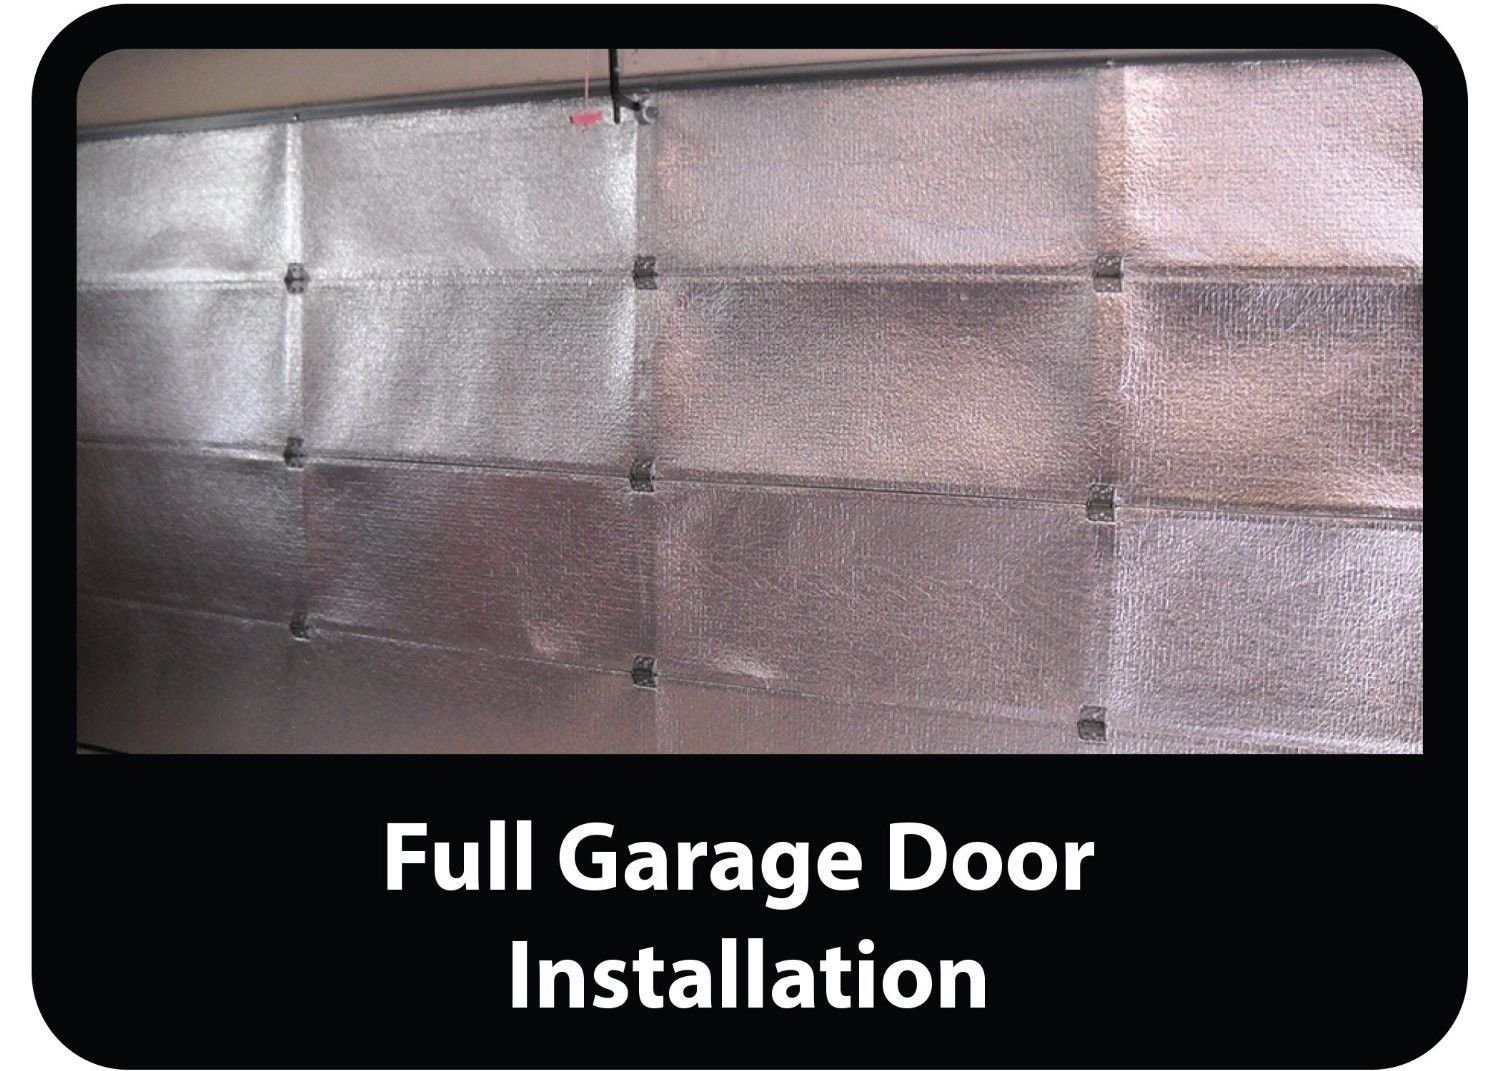 Low-E SSR 2 Car Garage Door Reflective Silver Foam Core Insulation Kit